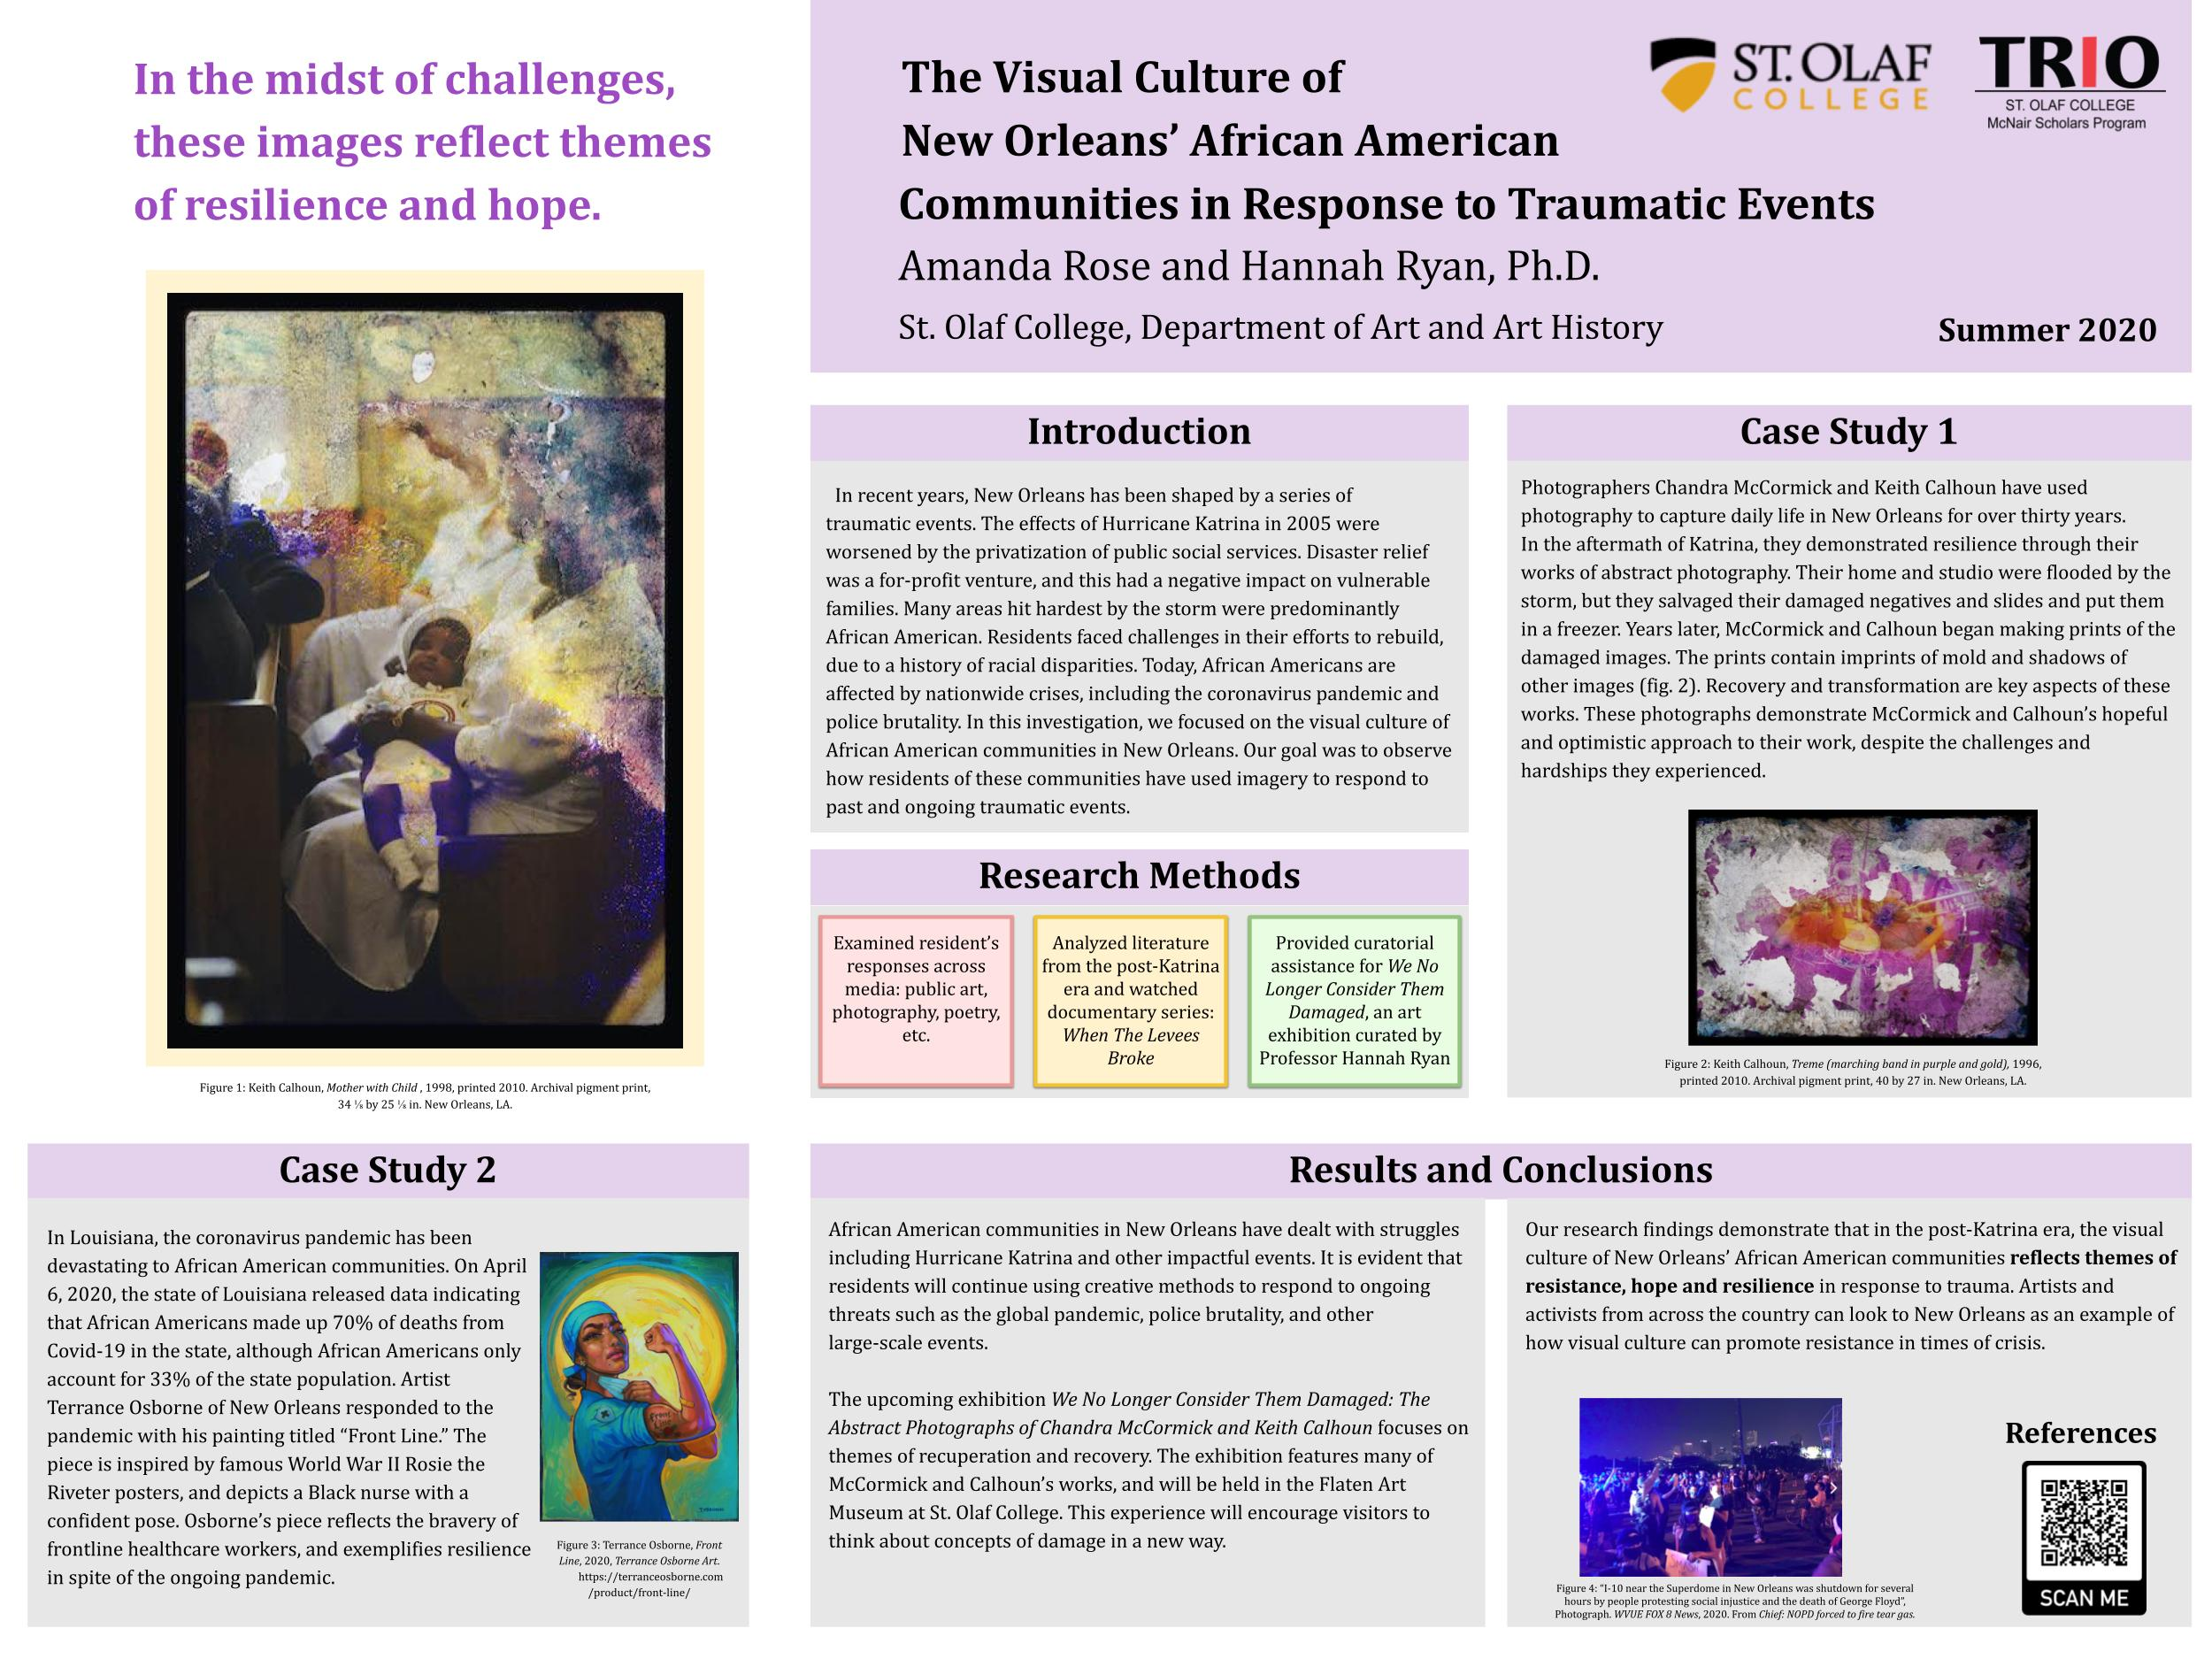 """Graphic of Amanda Rose's research poster on """"The Visual Culture of New Orleans' African American Communities in Response to Traumatic Events."""""""